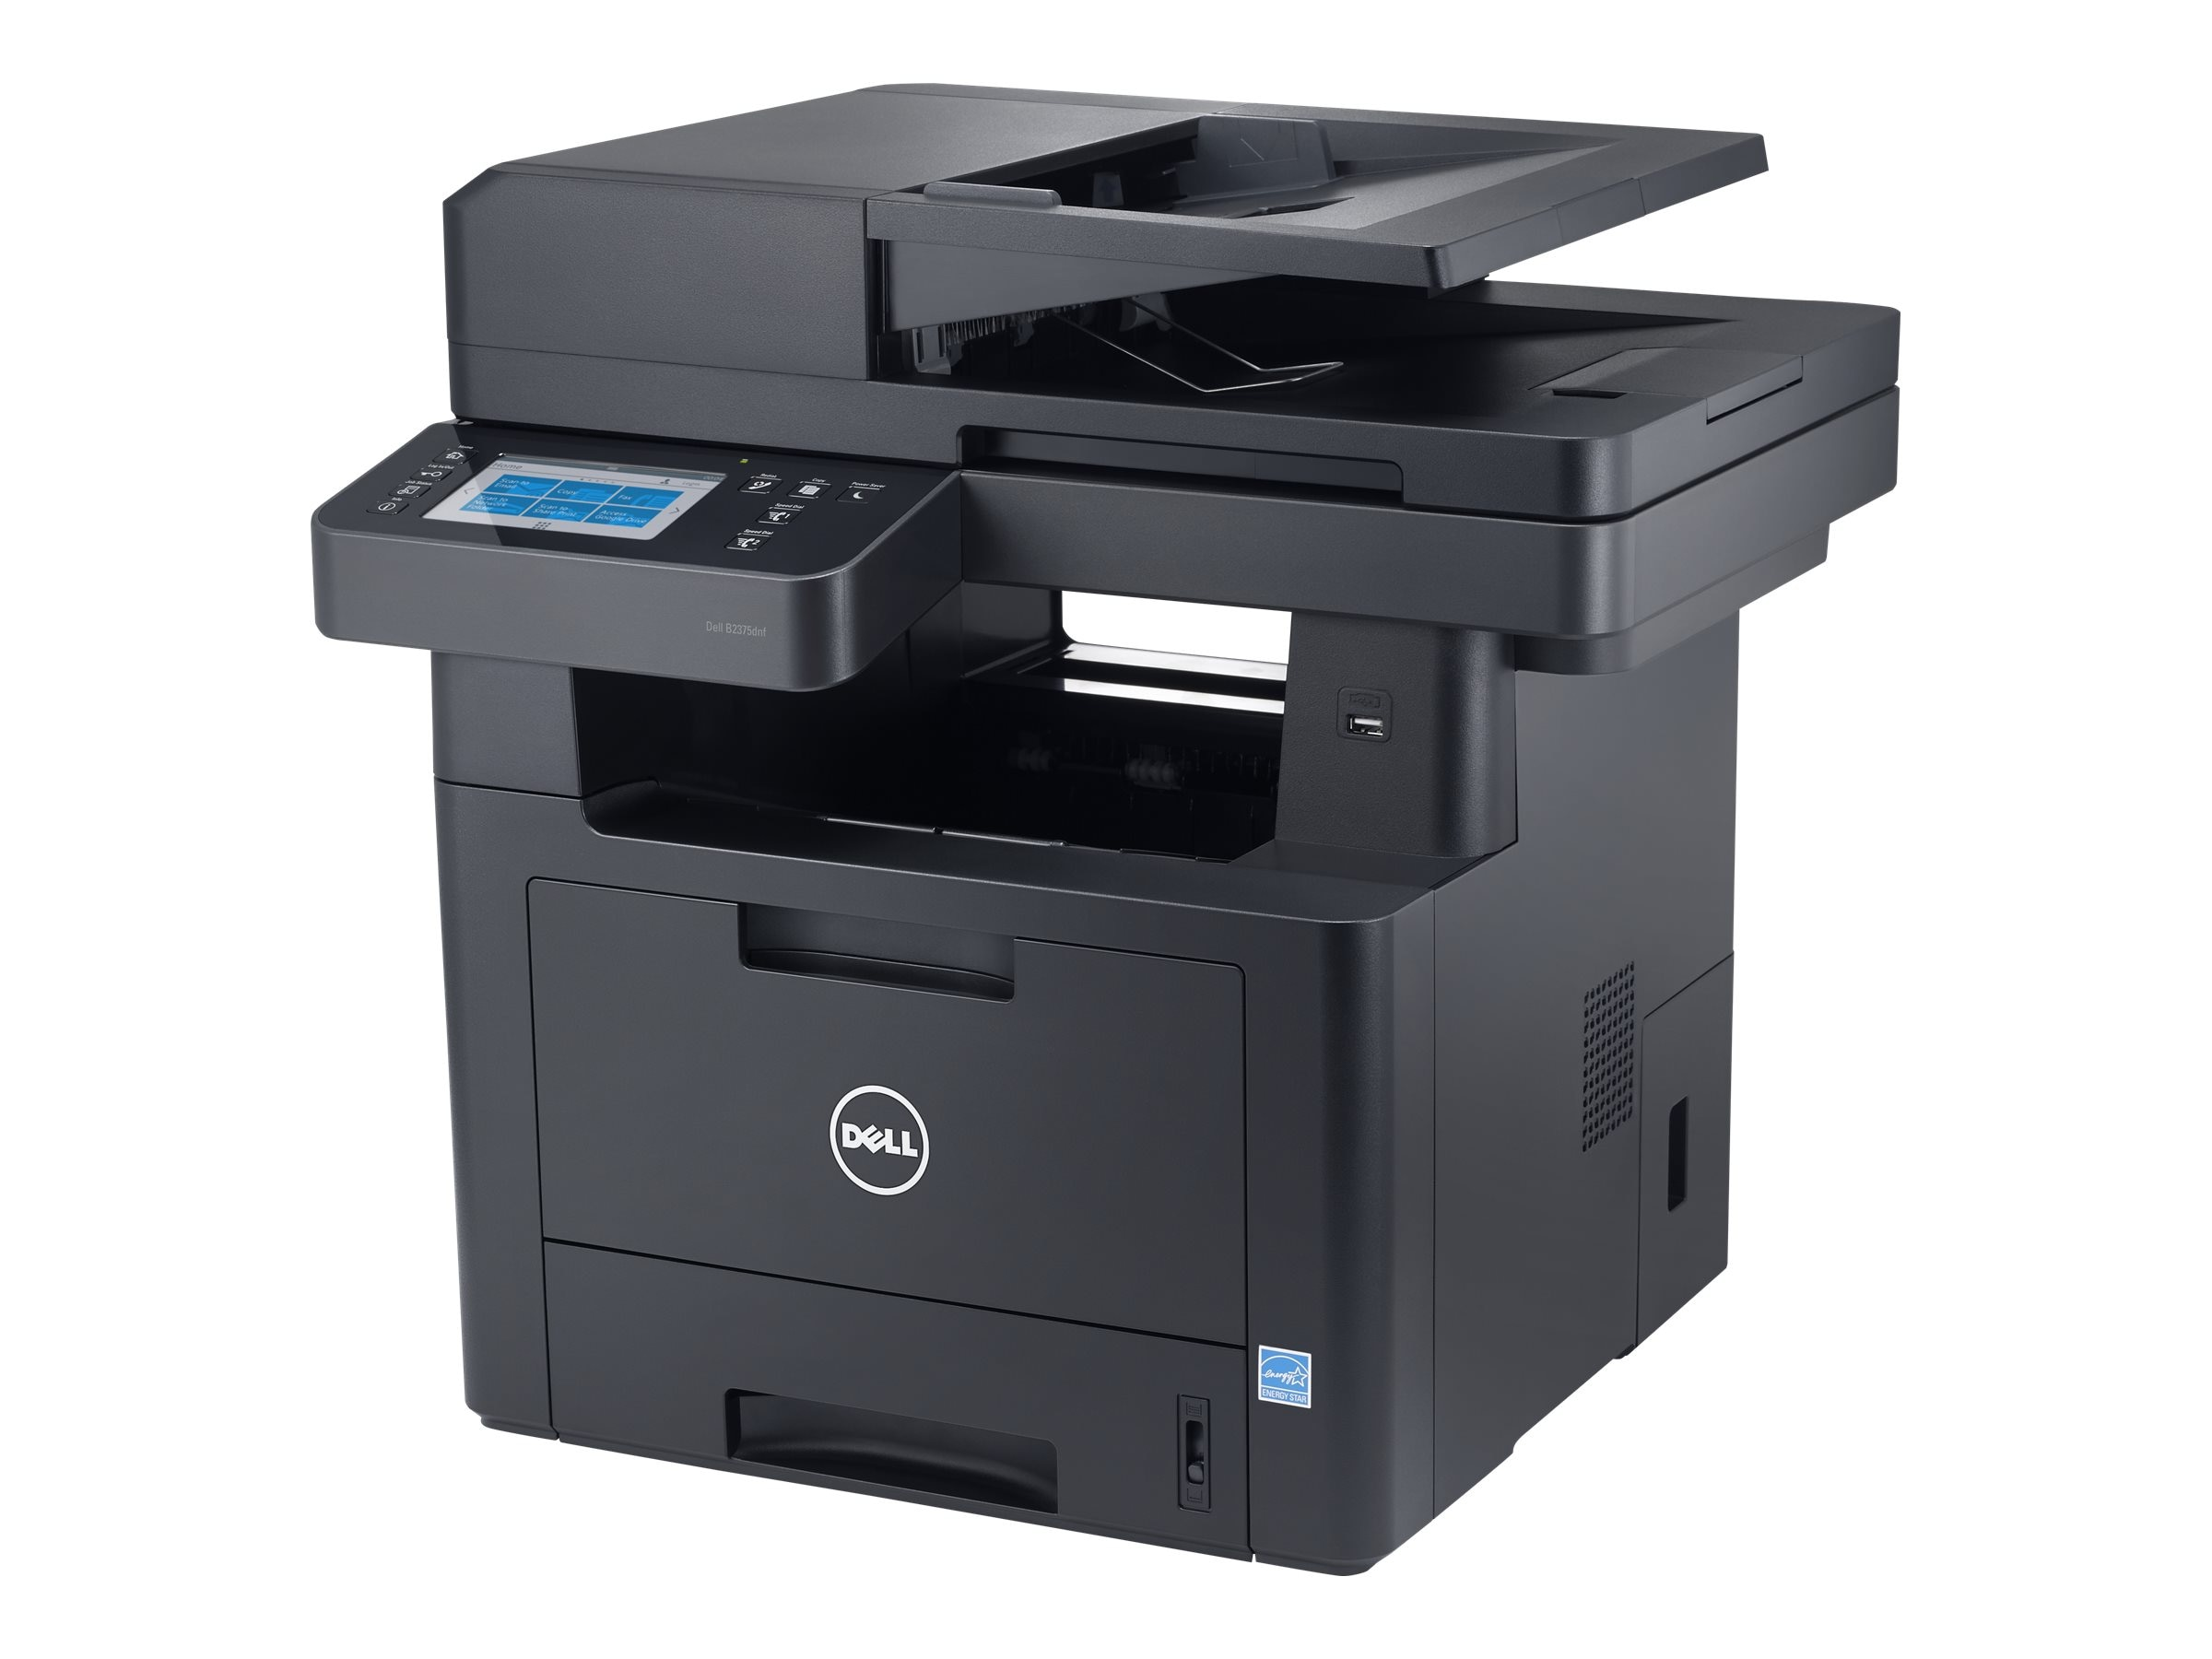 Dell B2375dnf Mono Multifunction Printer, 0X02P, 16389372, MultiFunction - Laser (monochrome)